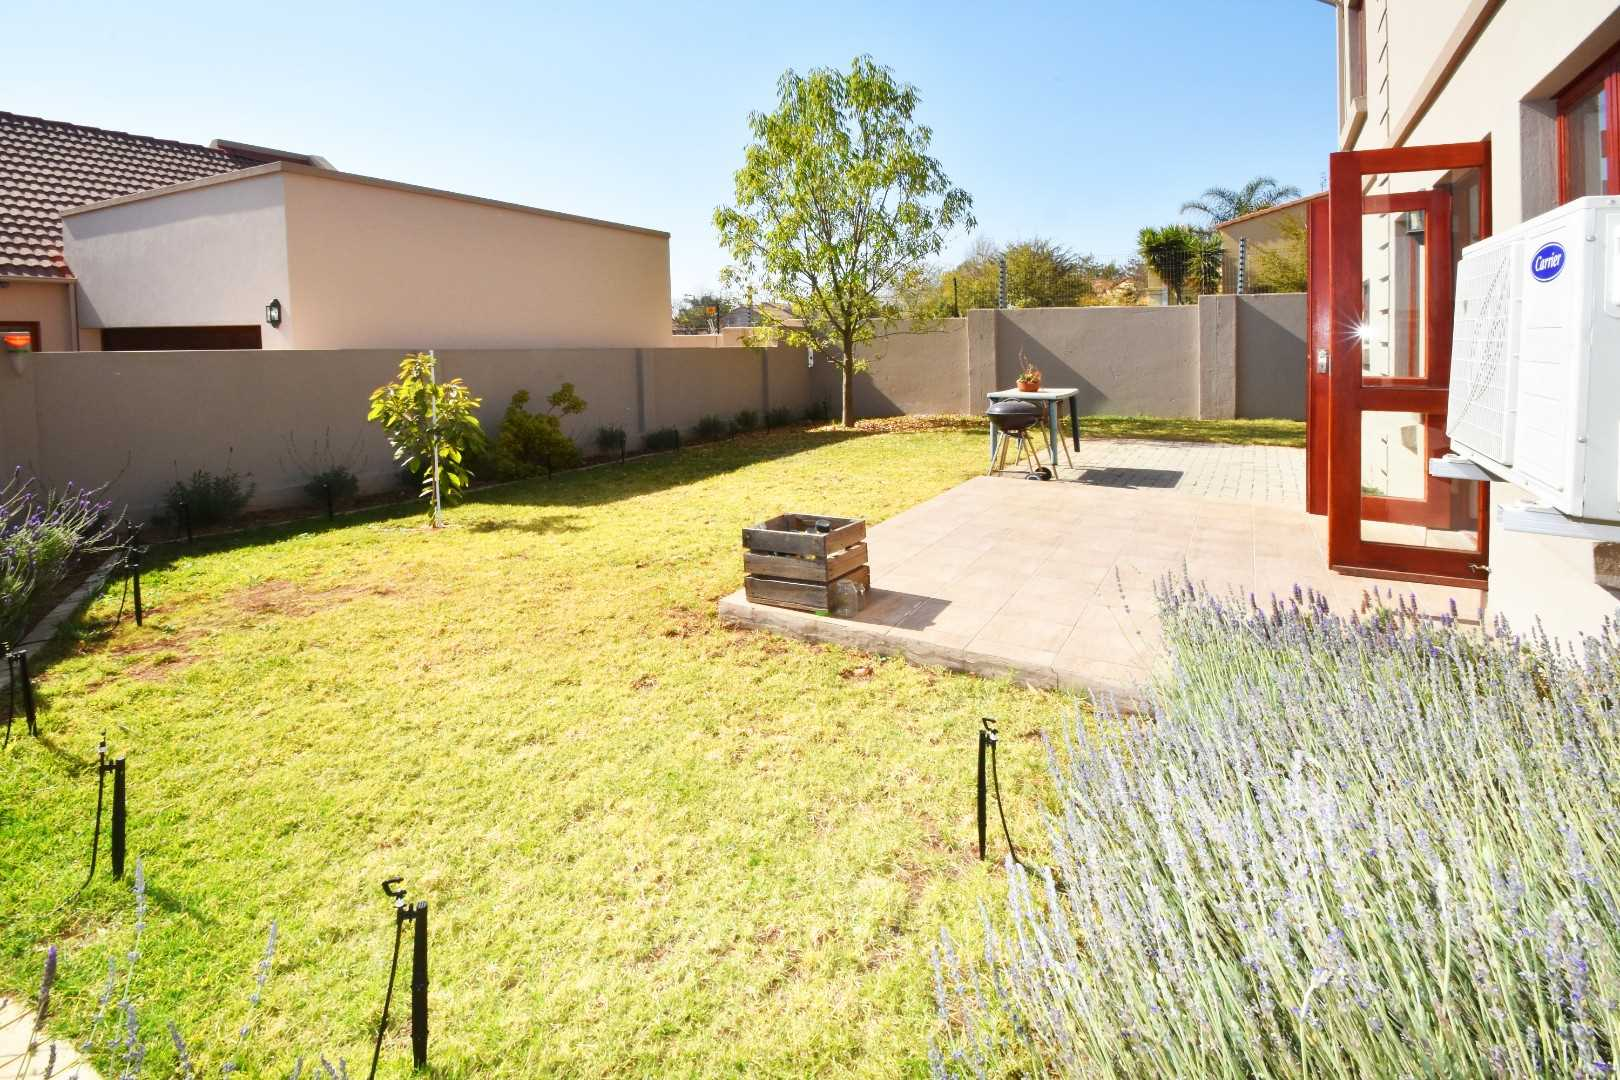 Large garden with plenty of space to expand, even upstairs over the patio, to enclose it.